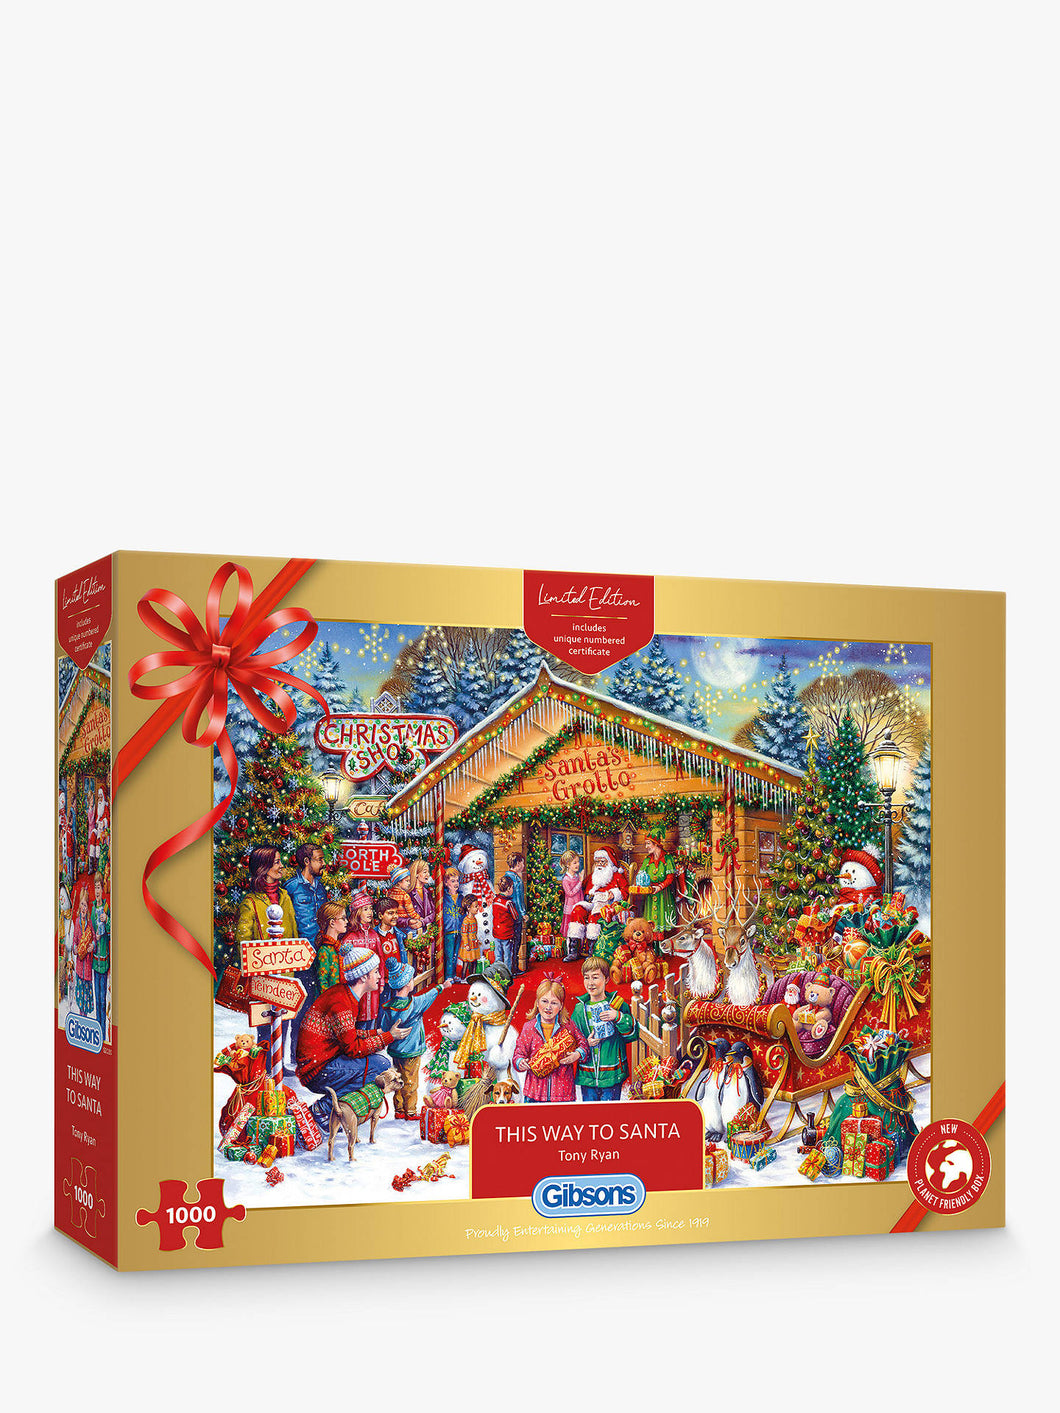 The Way to Santa 1000 piece jigsaw